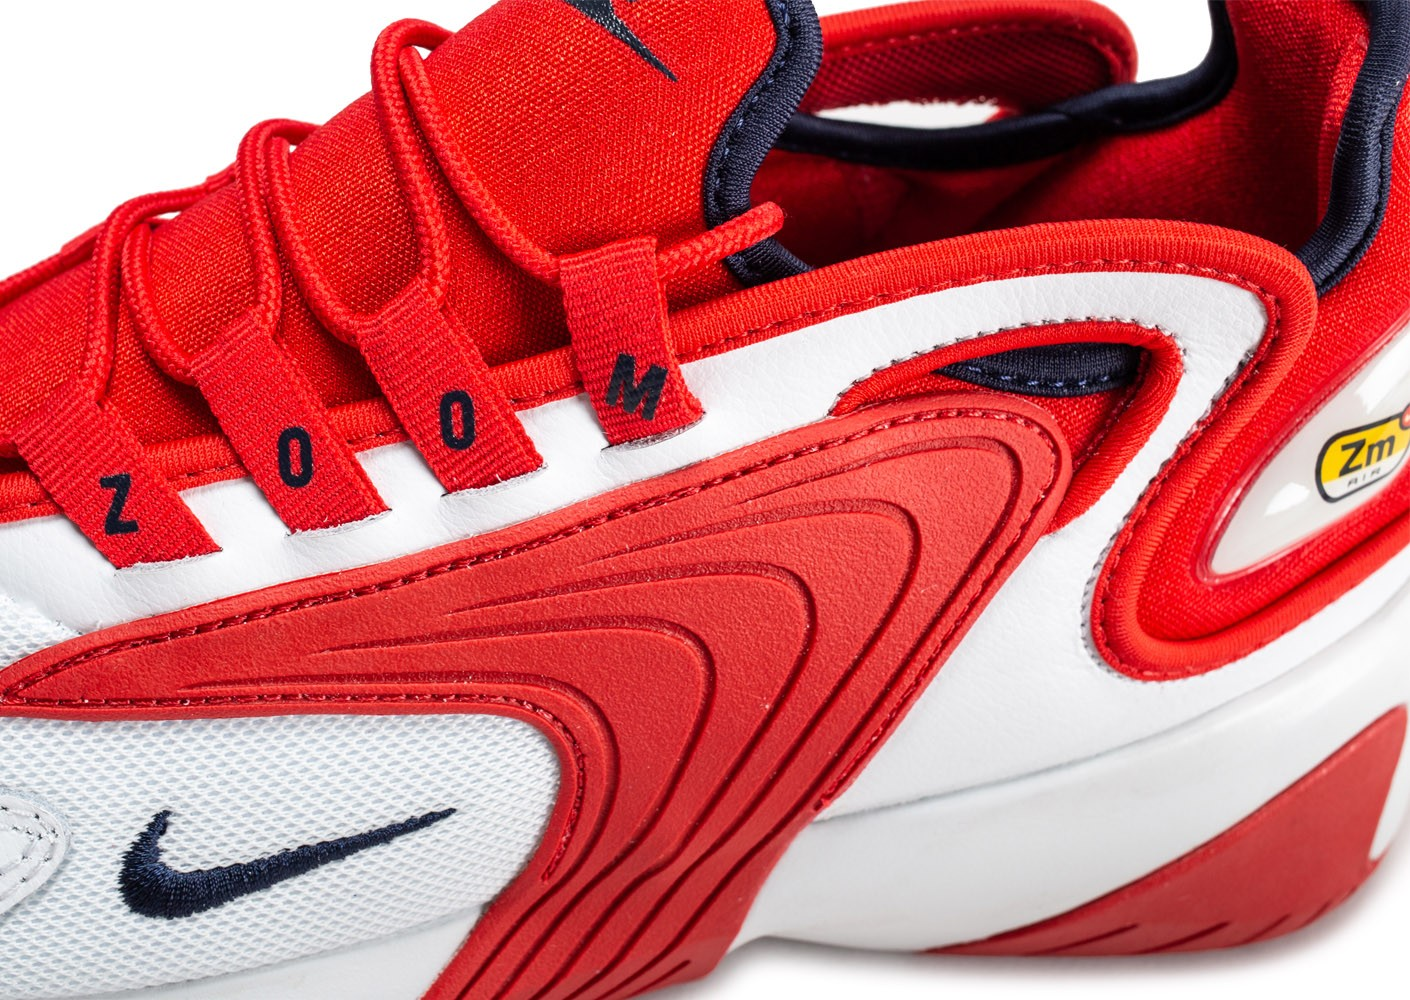 Nike Zoom 2K blanche et rouge - Chaussures Baskets homme - Chausport